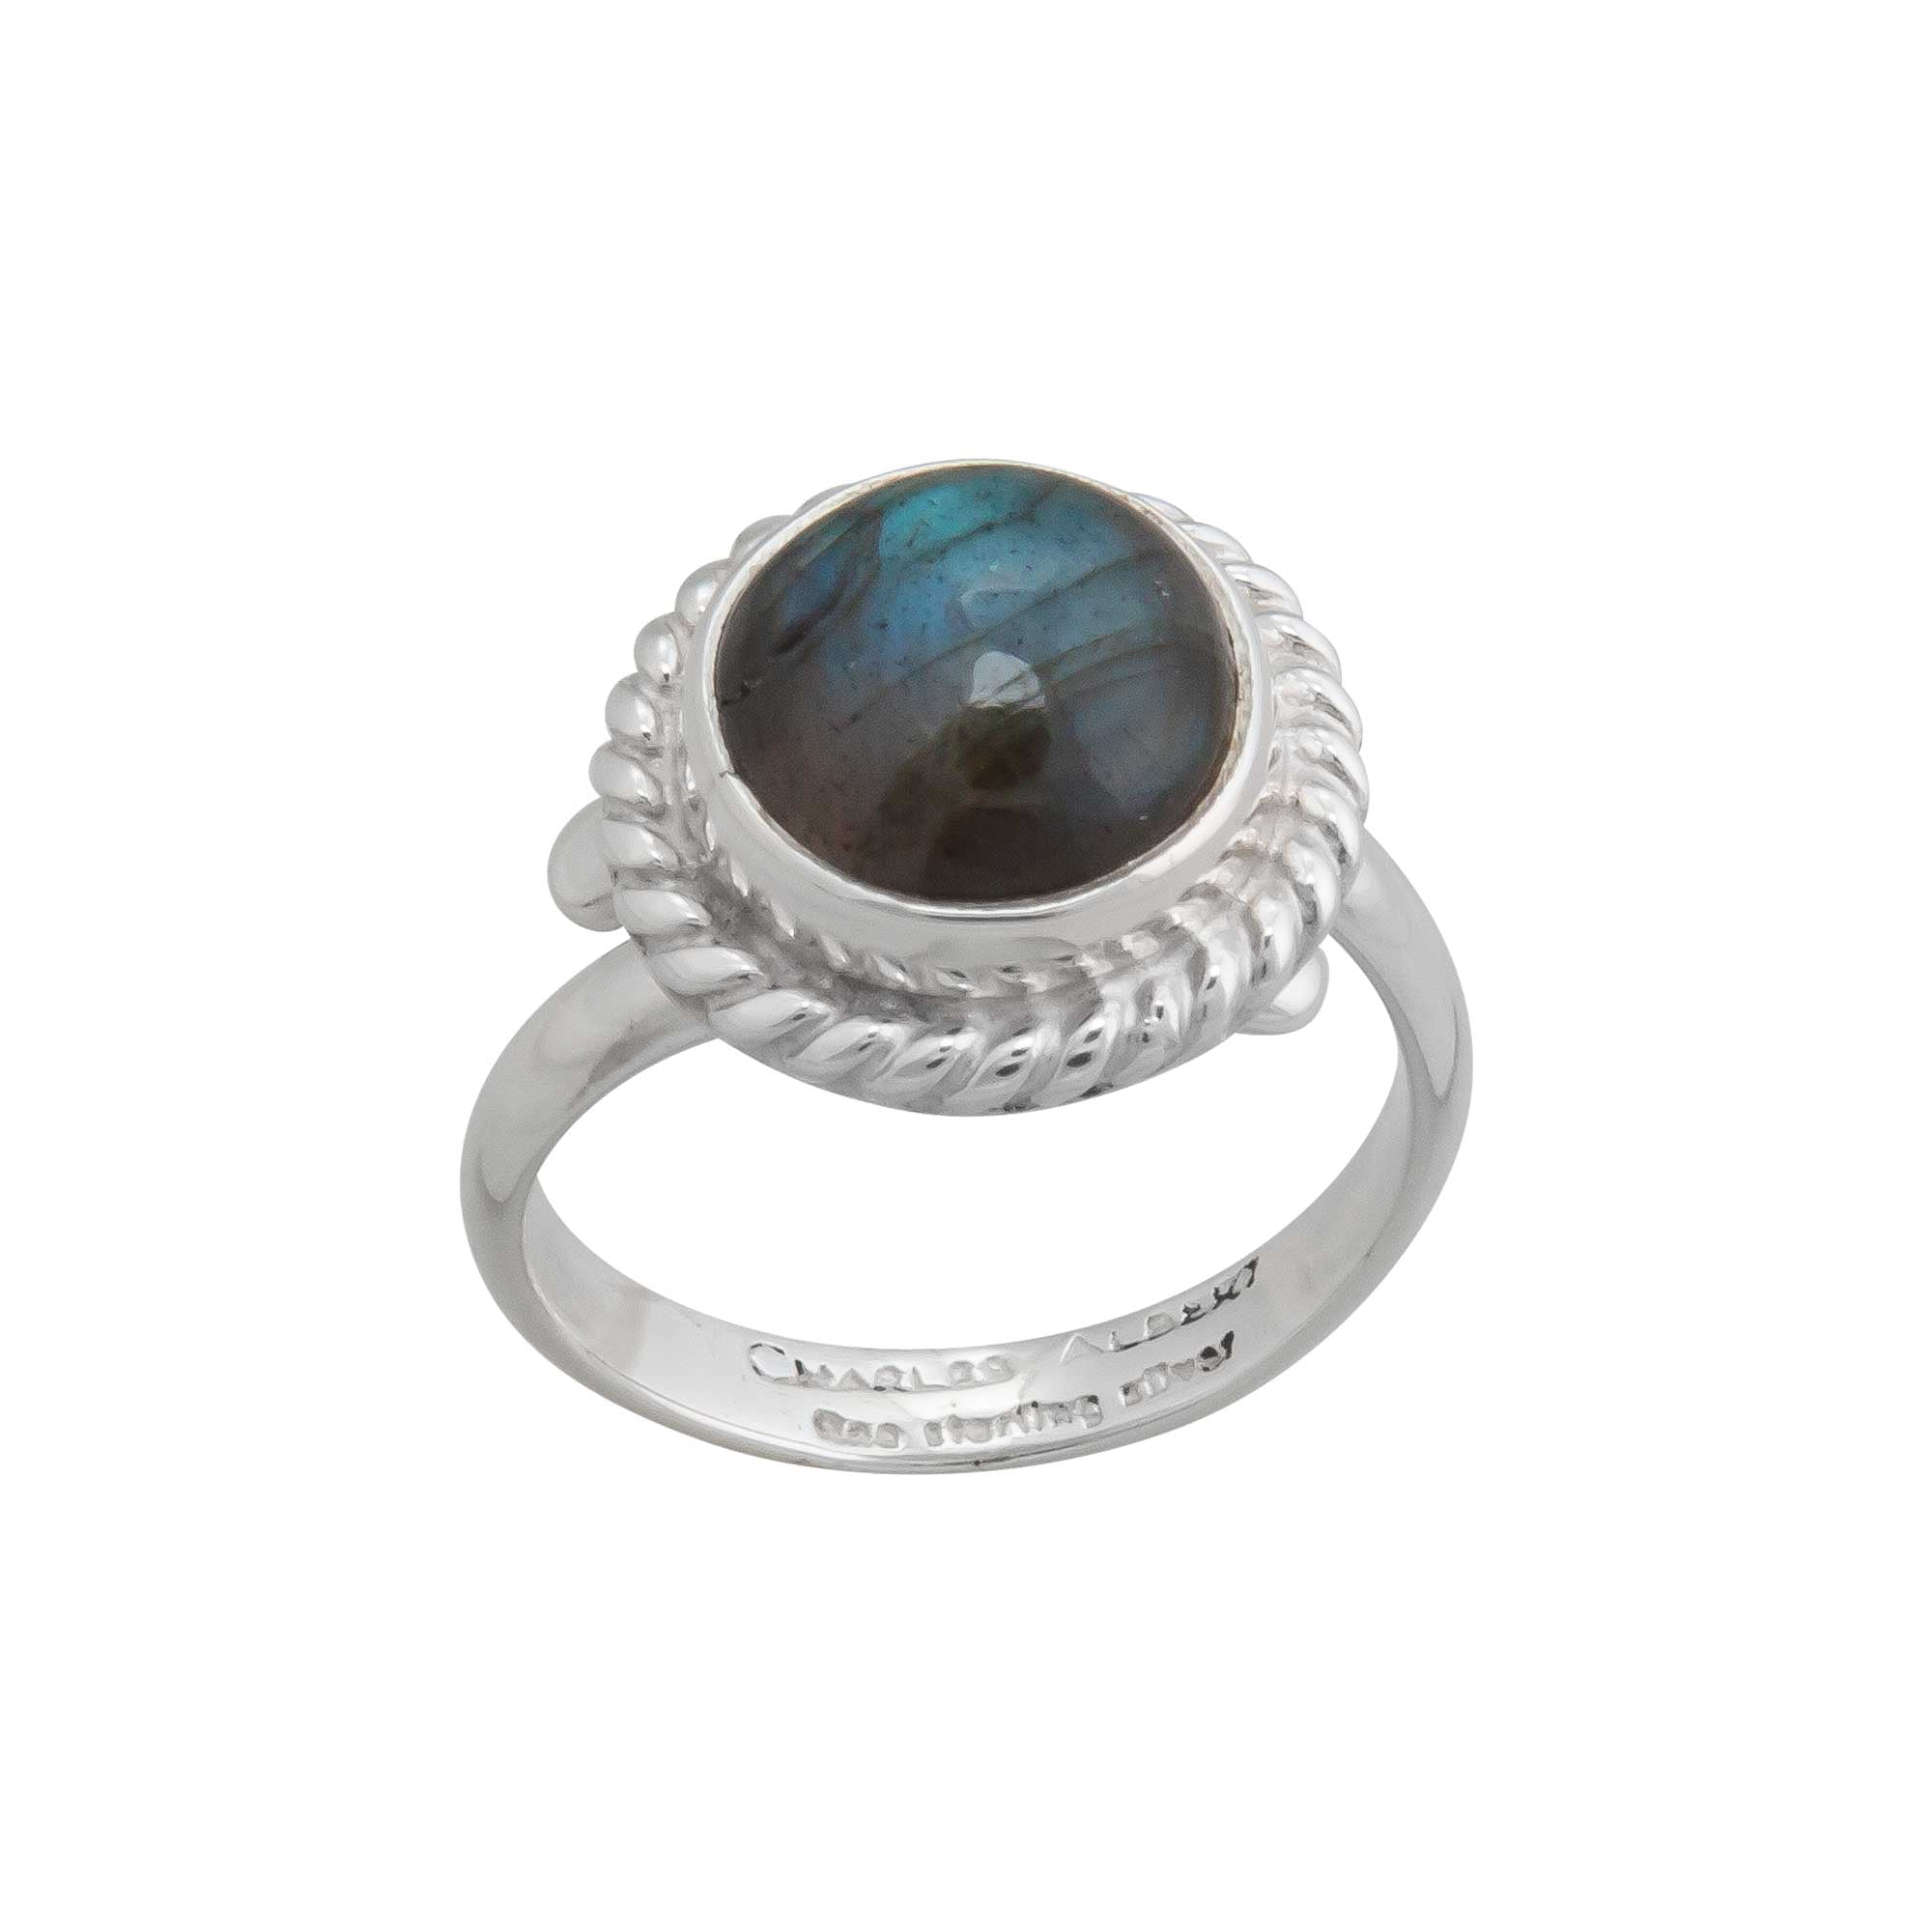 Sterling Silver Labradorite Ring with Detailed Rope Edge | Charles Albert Jewelry